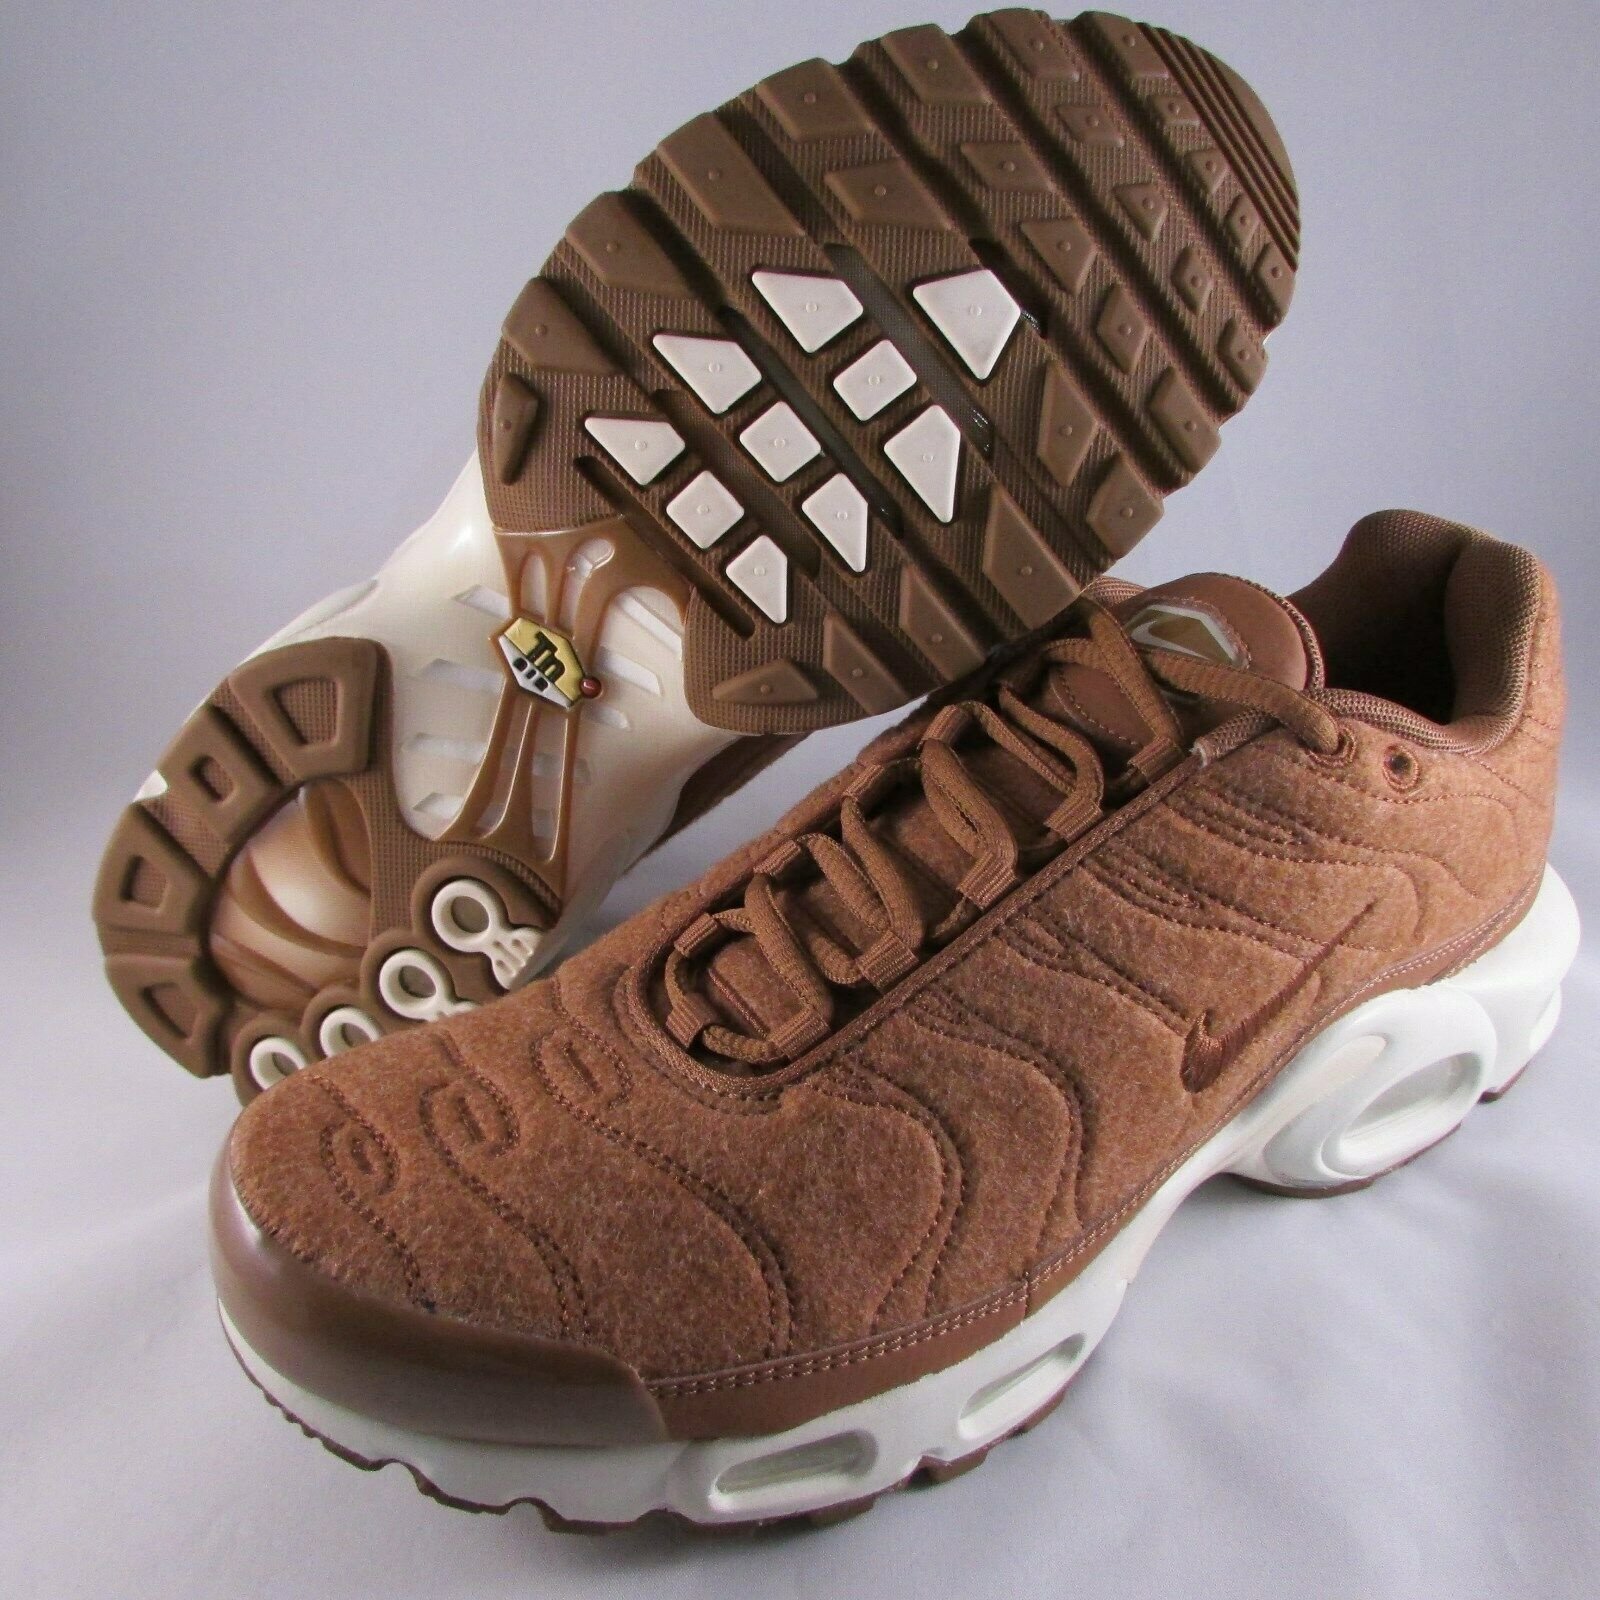 Nike Air Max Plus TN Running shoes Quilted Brown Ale Sz 8.5 NWOB 806262-200